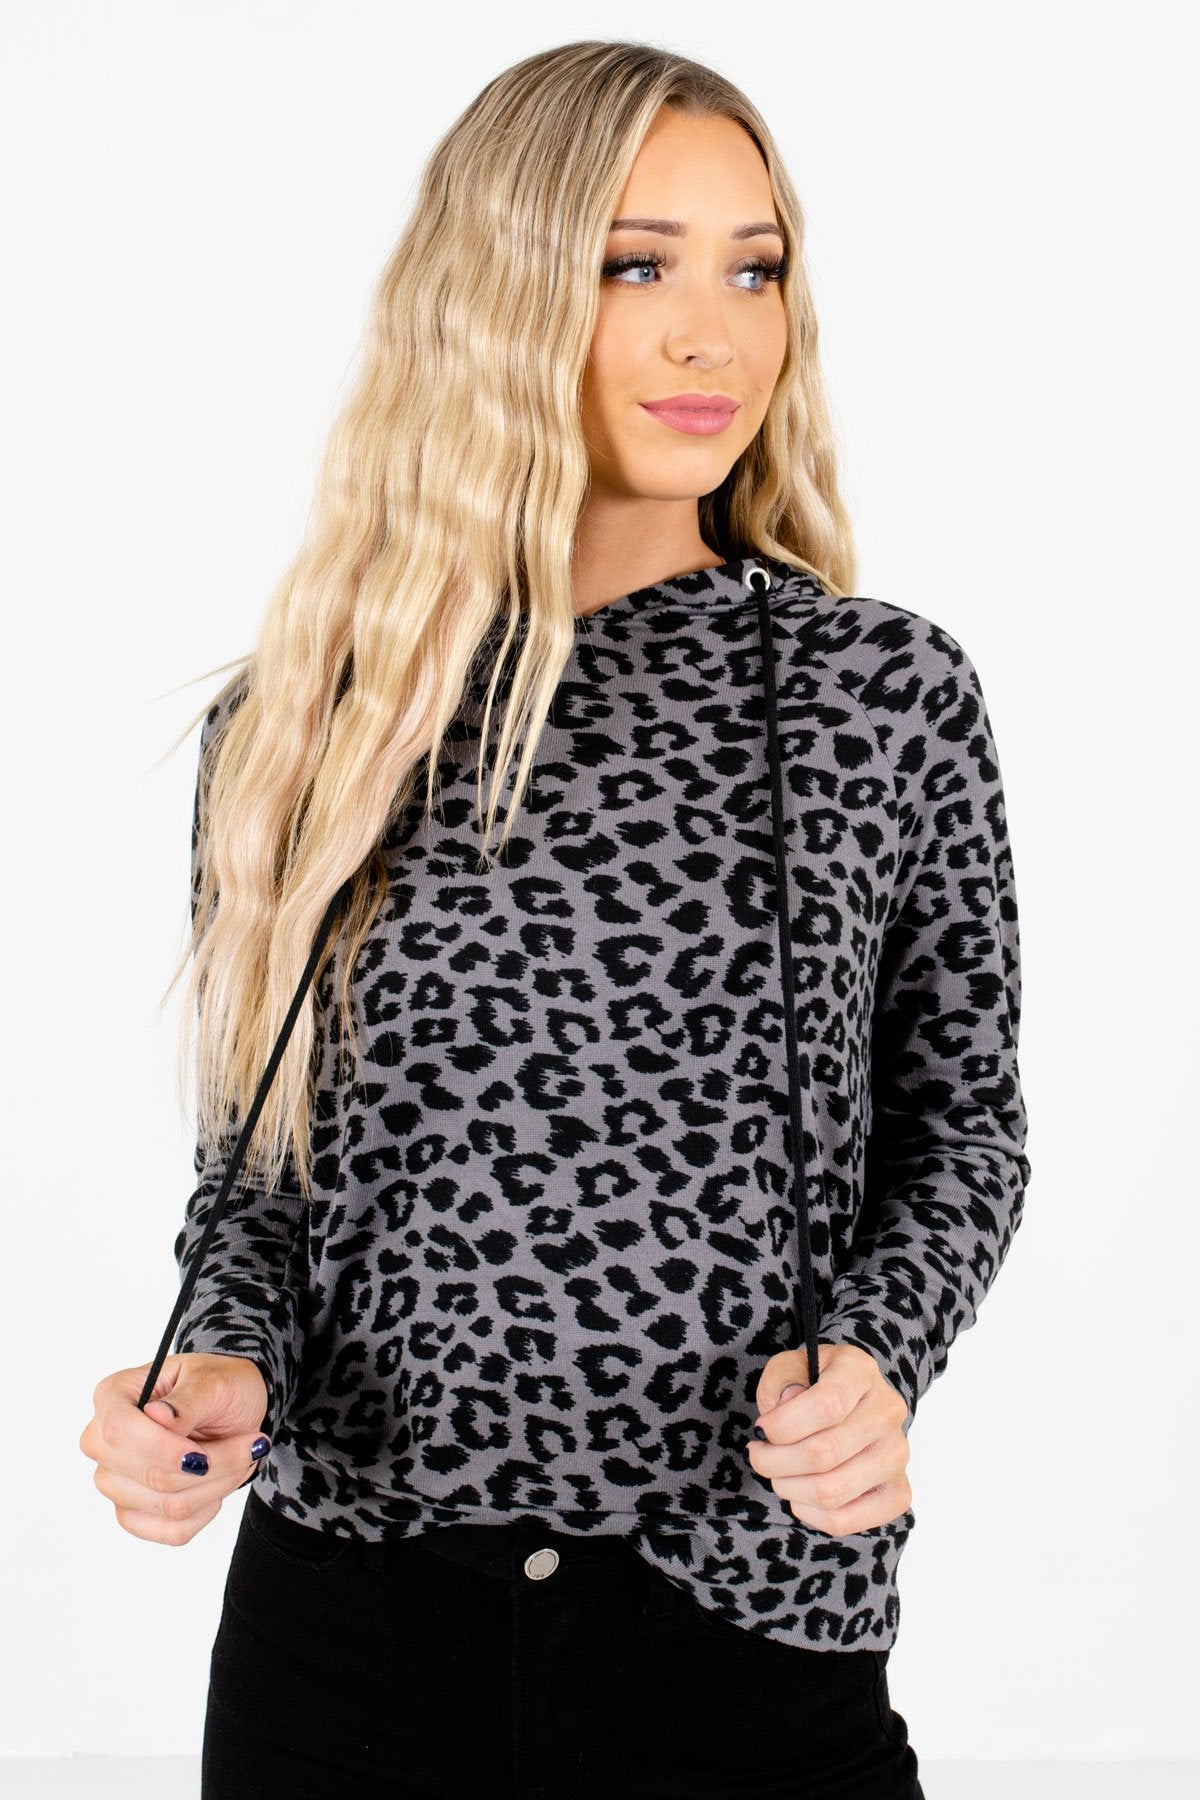 Charcoal Gray Black Leopard Print Cute Soft Boutique Hoodies